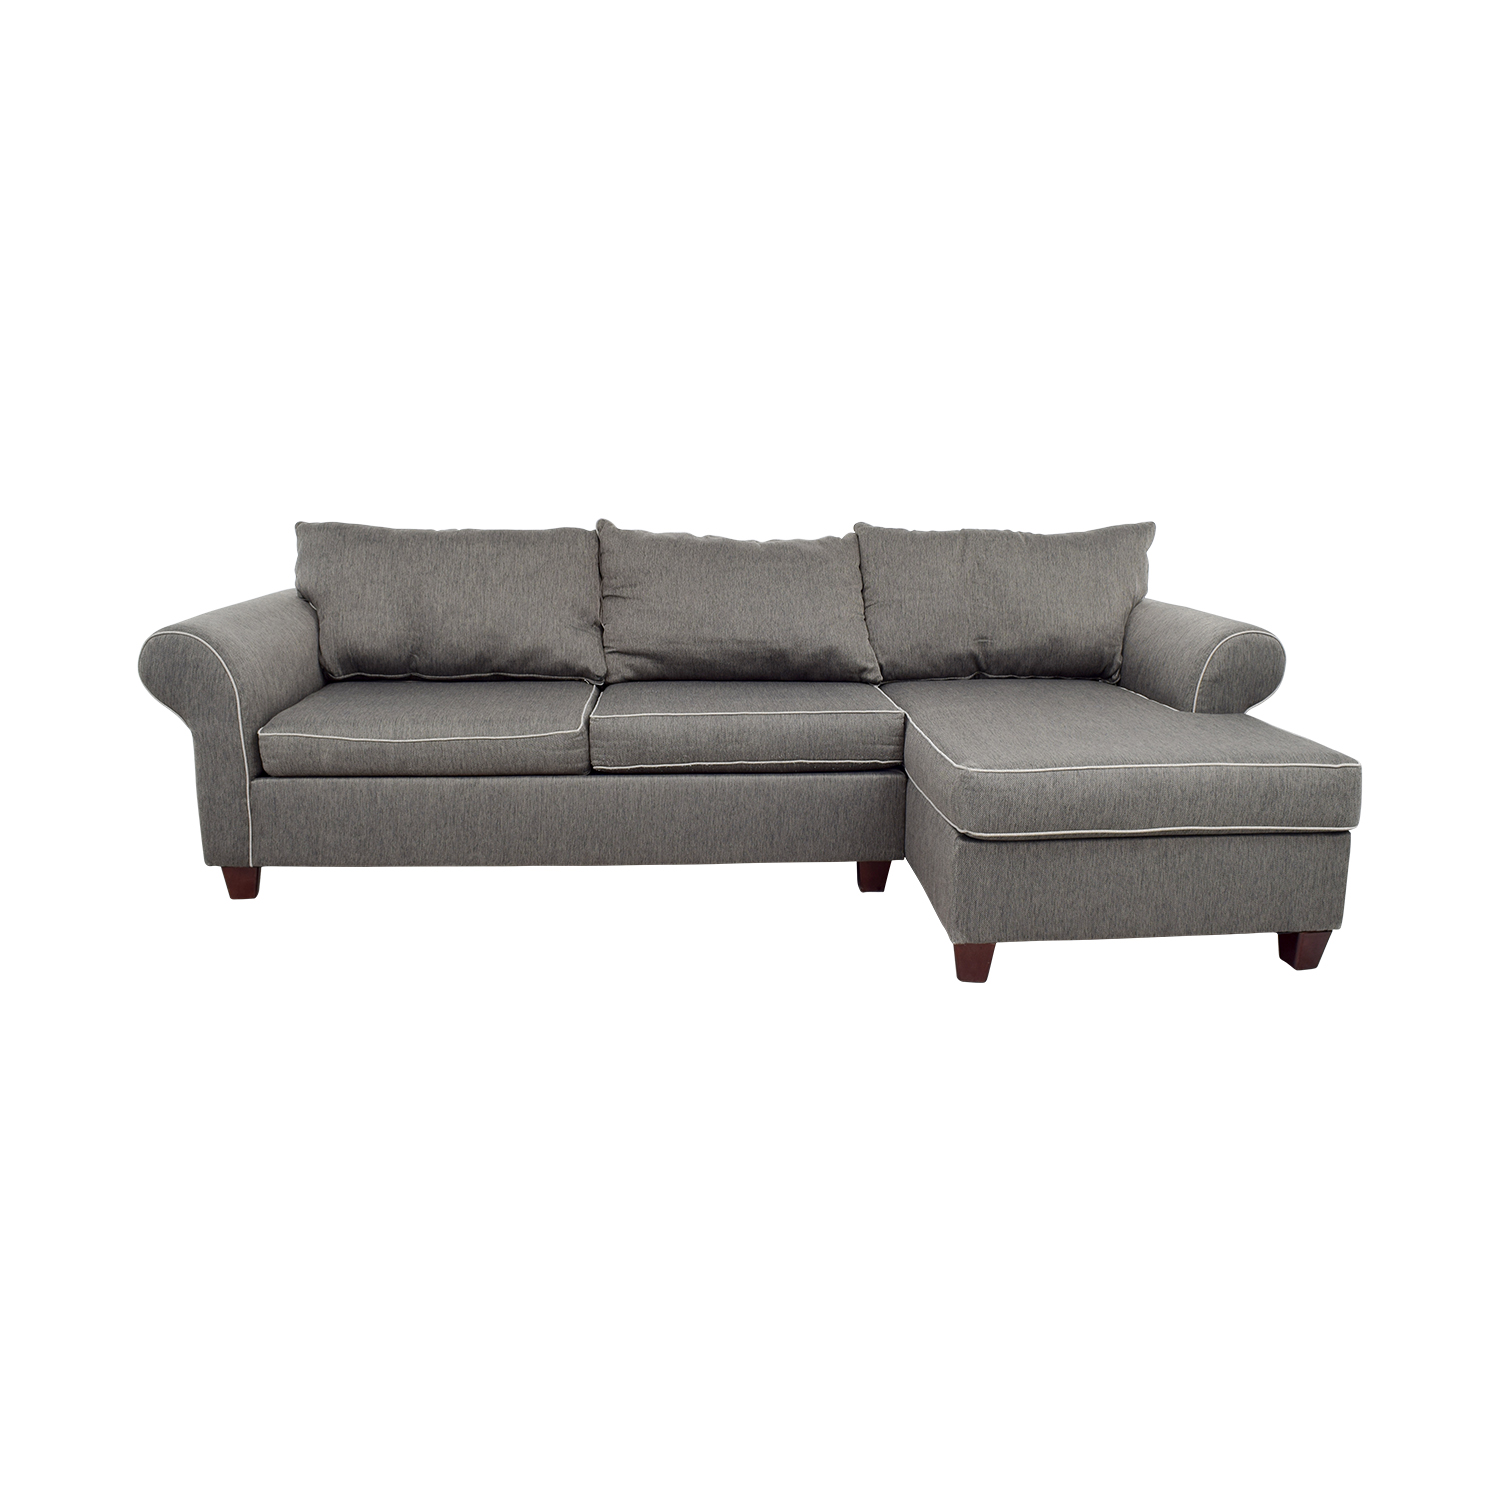 Bobs Furniture Bobs Furniture Grey Chaise Sectional Sofas